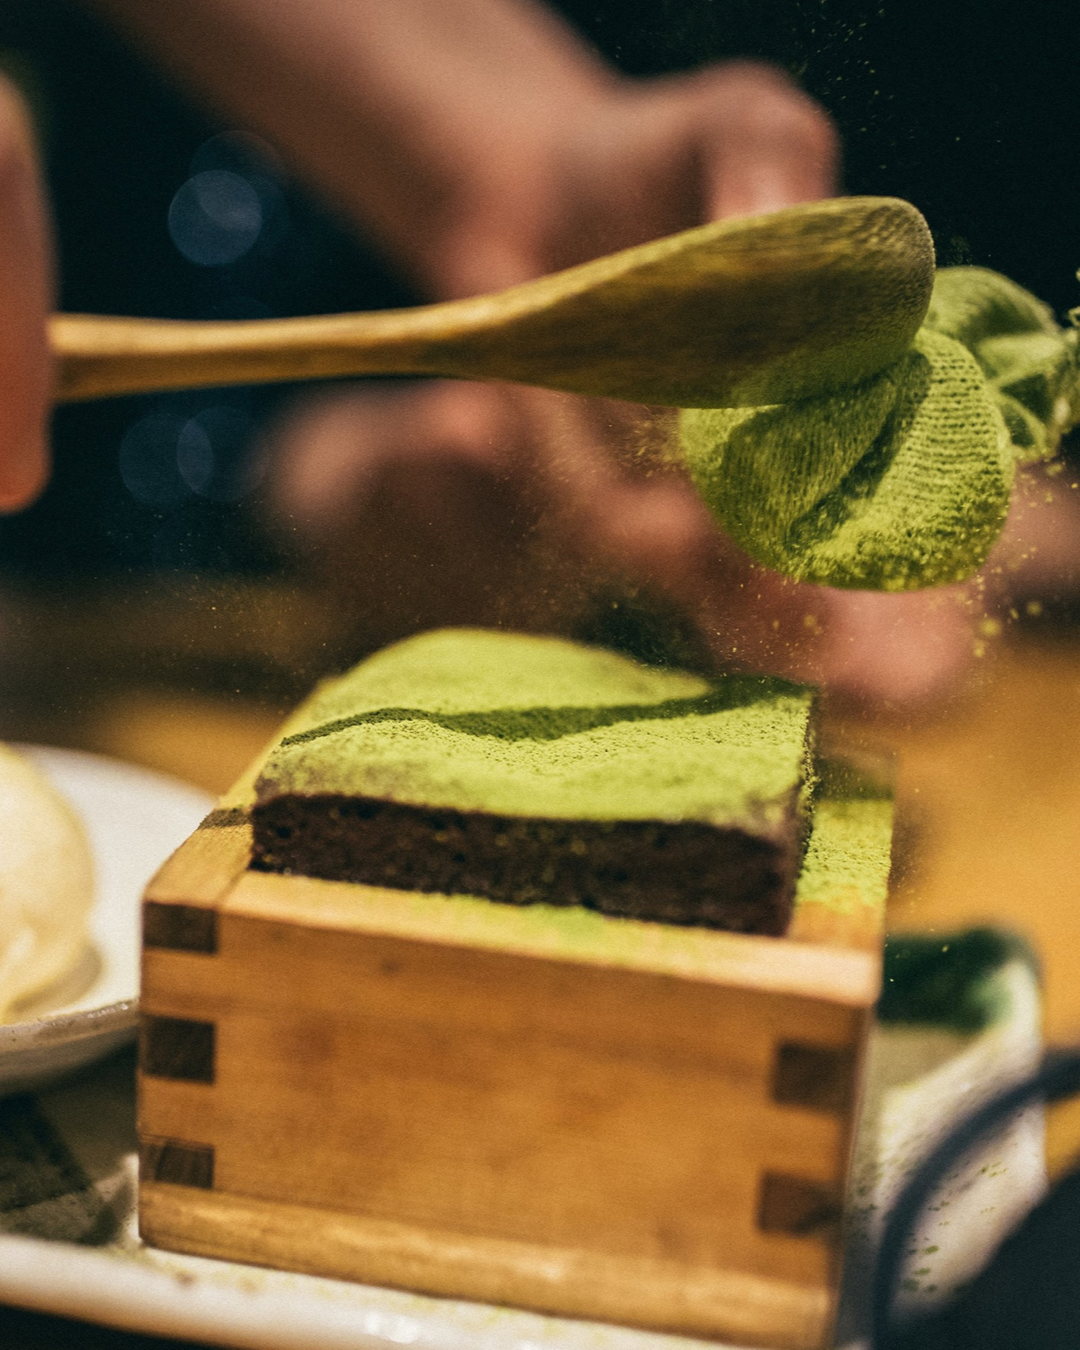 Using a wooden spoon to dust a pudding at Masu with matcha powder